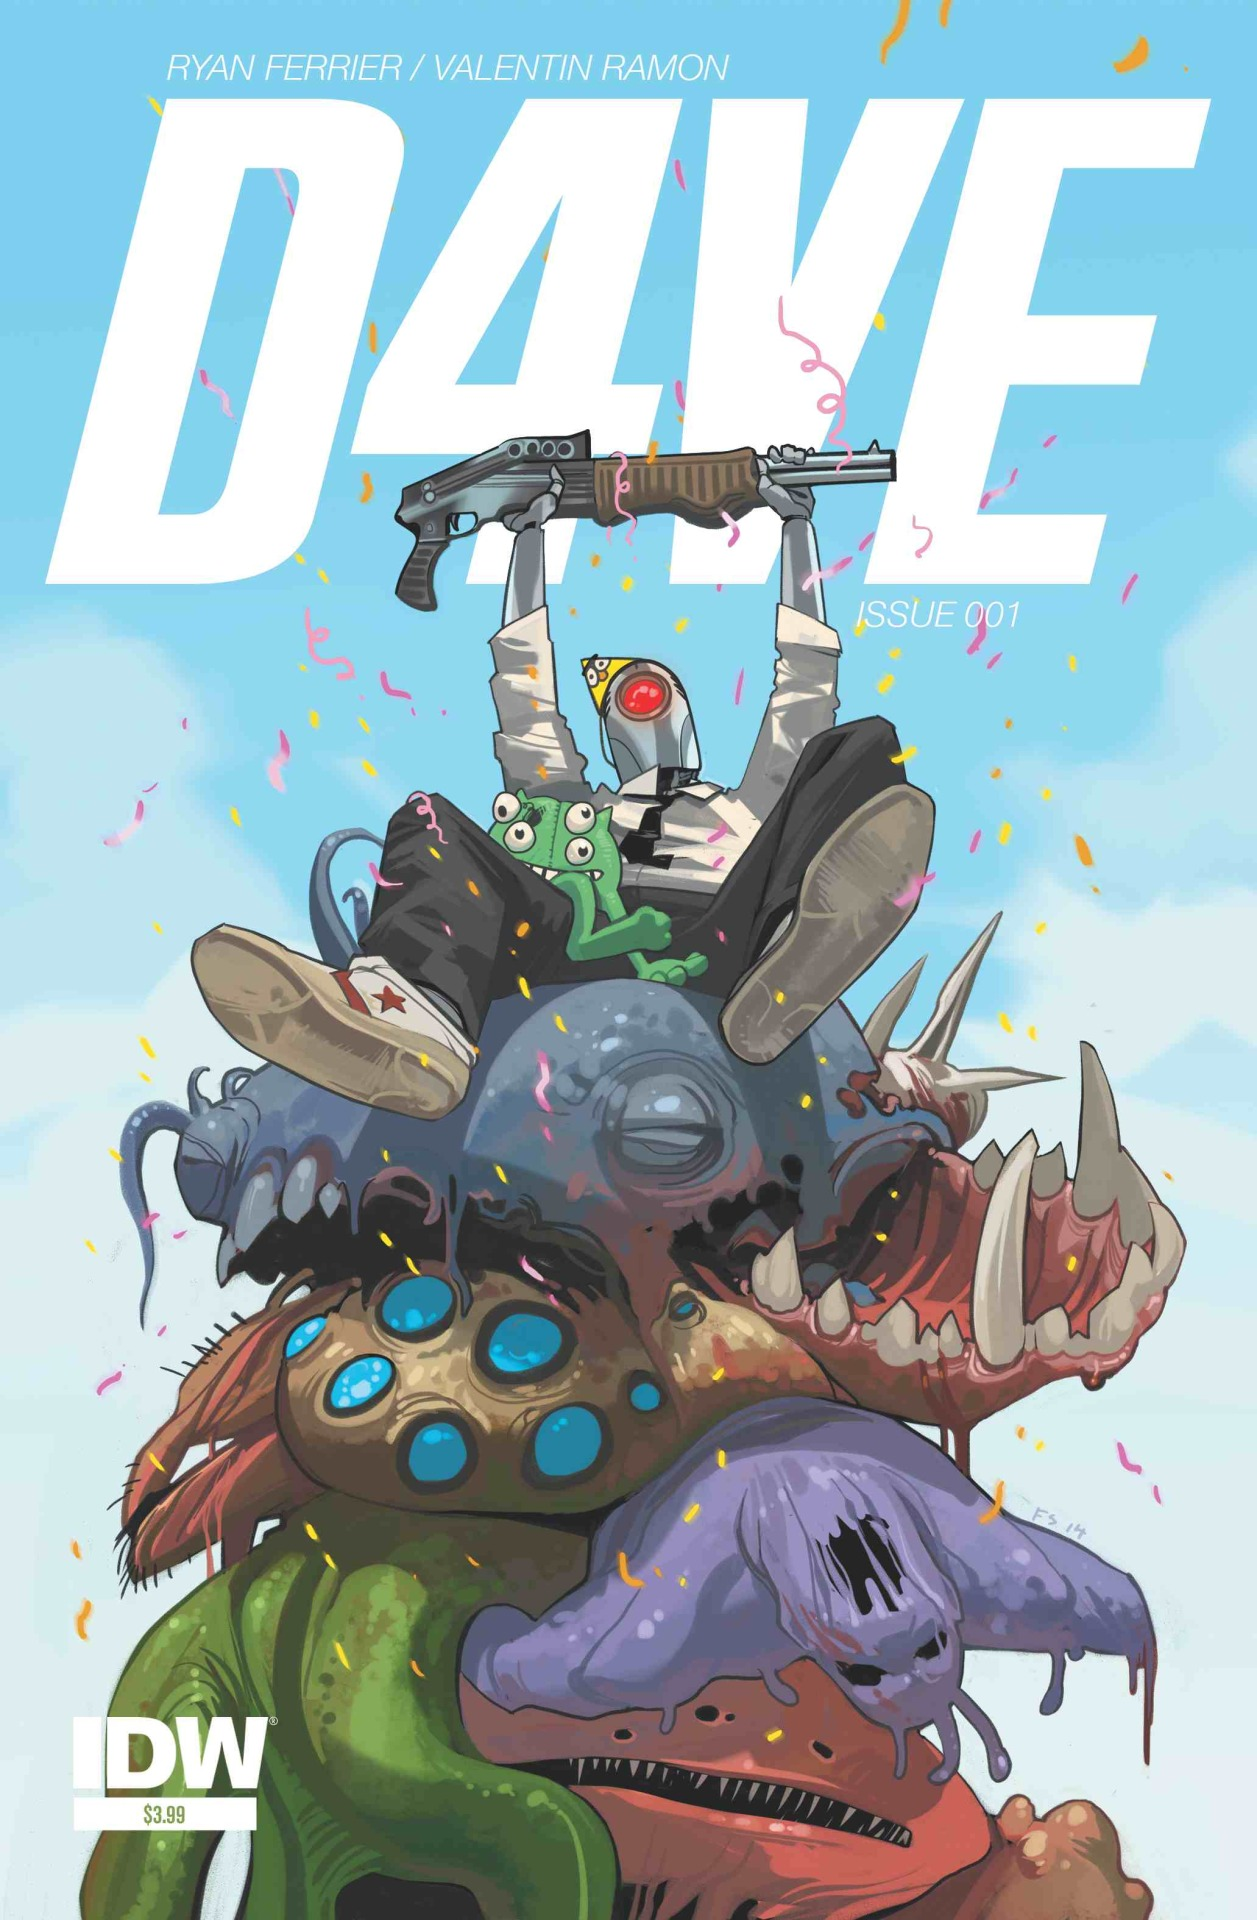 rferrier :     We can finally talk about it! Good news! Starting February, D4VE will be released in single monthly issues through the fine folks at IDW!   How freaking cool is this? And check out that amazing, amazing cover from the one and only, mega-talented Fiona Staples. Just a dream come true.   Valentin and I are beyond excited to have D4VE be part of IDW.  Check out the full press release here .   #Butthorn2015